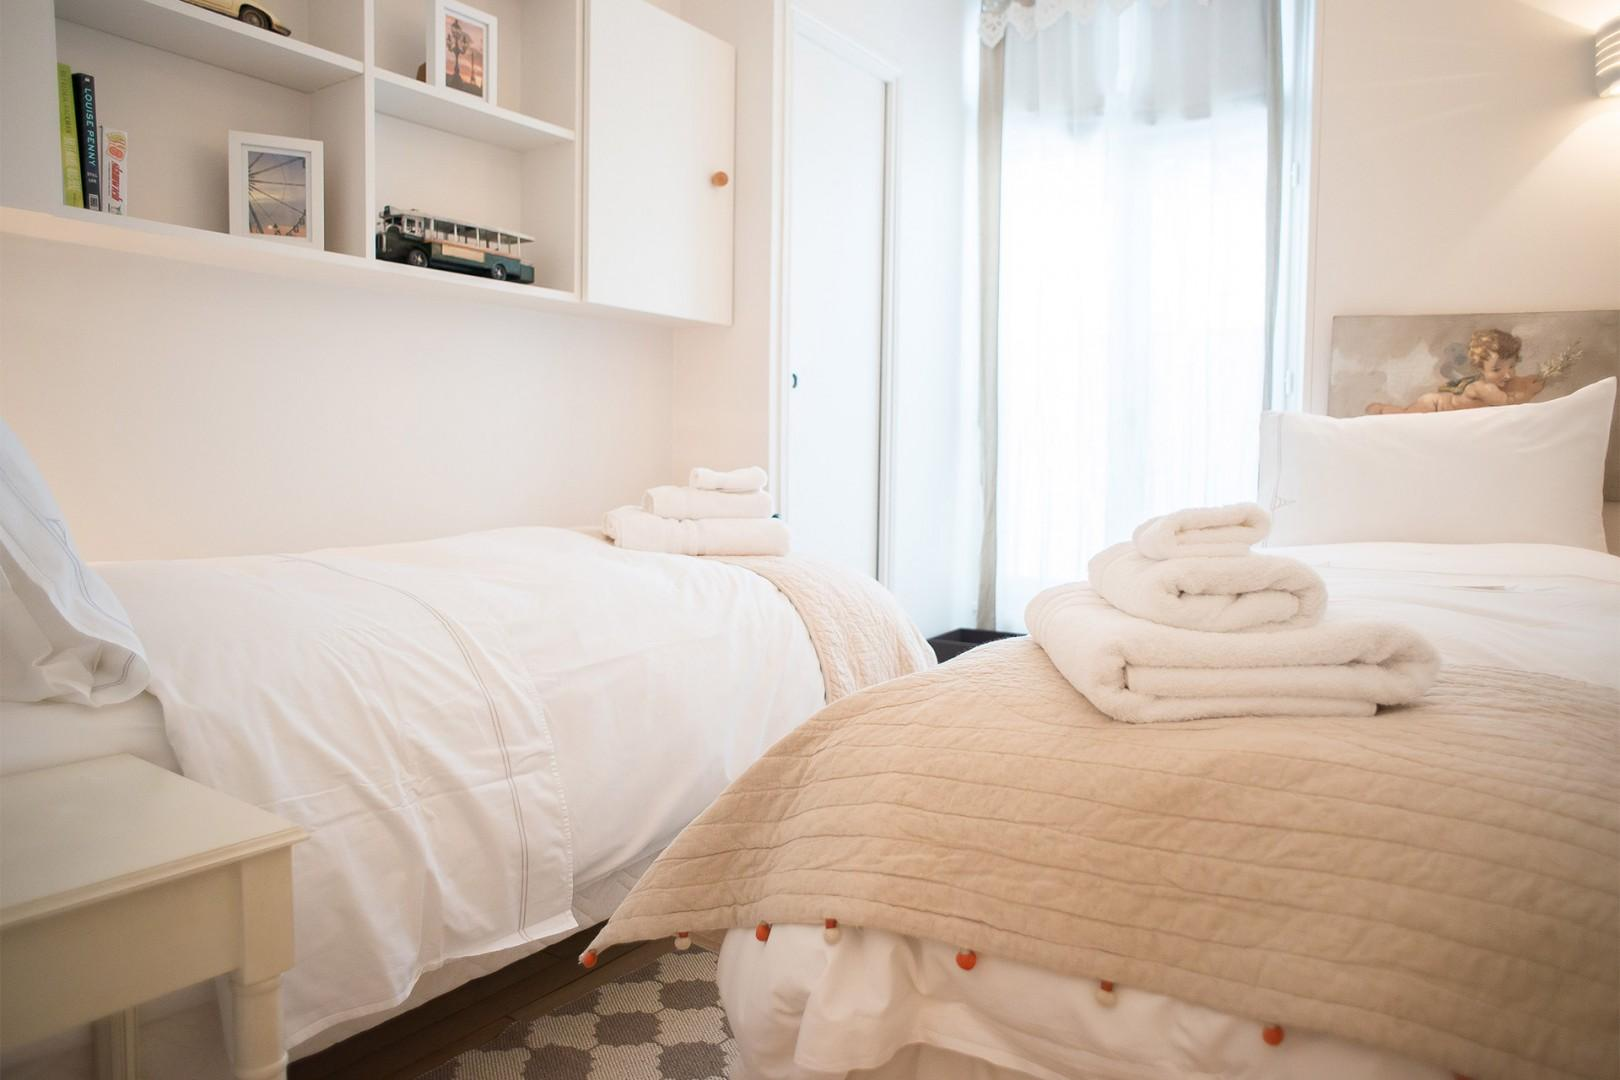 The lovely bedroom 2 has comfortable beds and en suite bathroom.